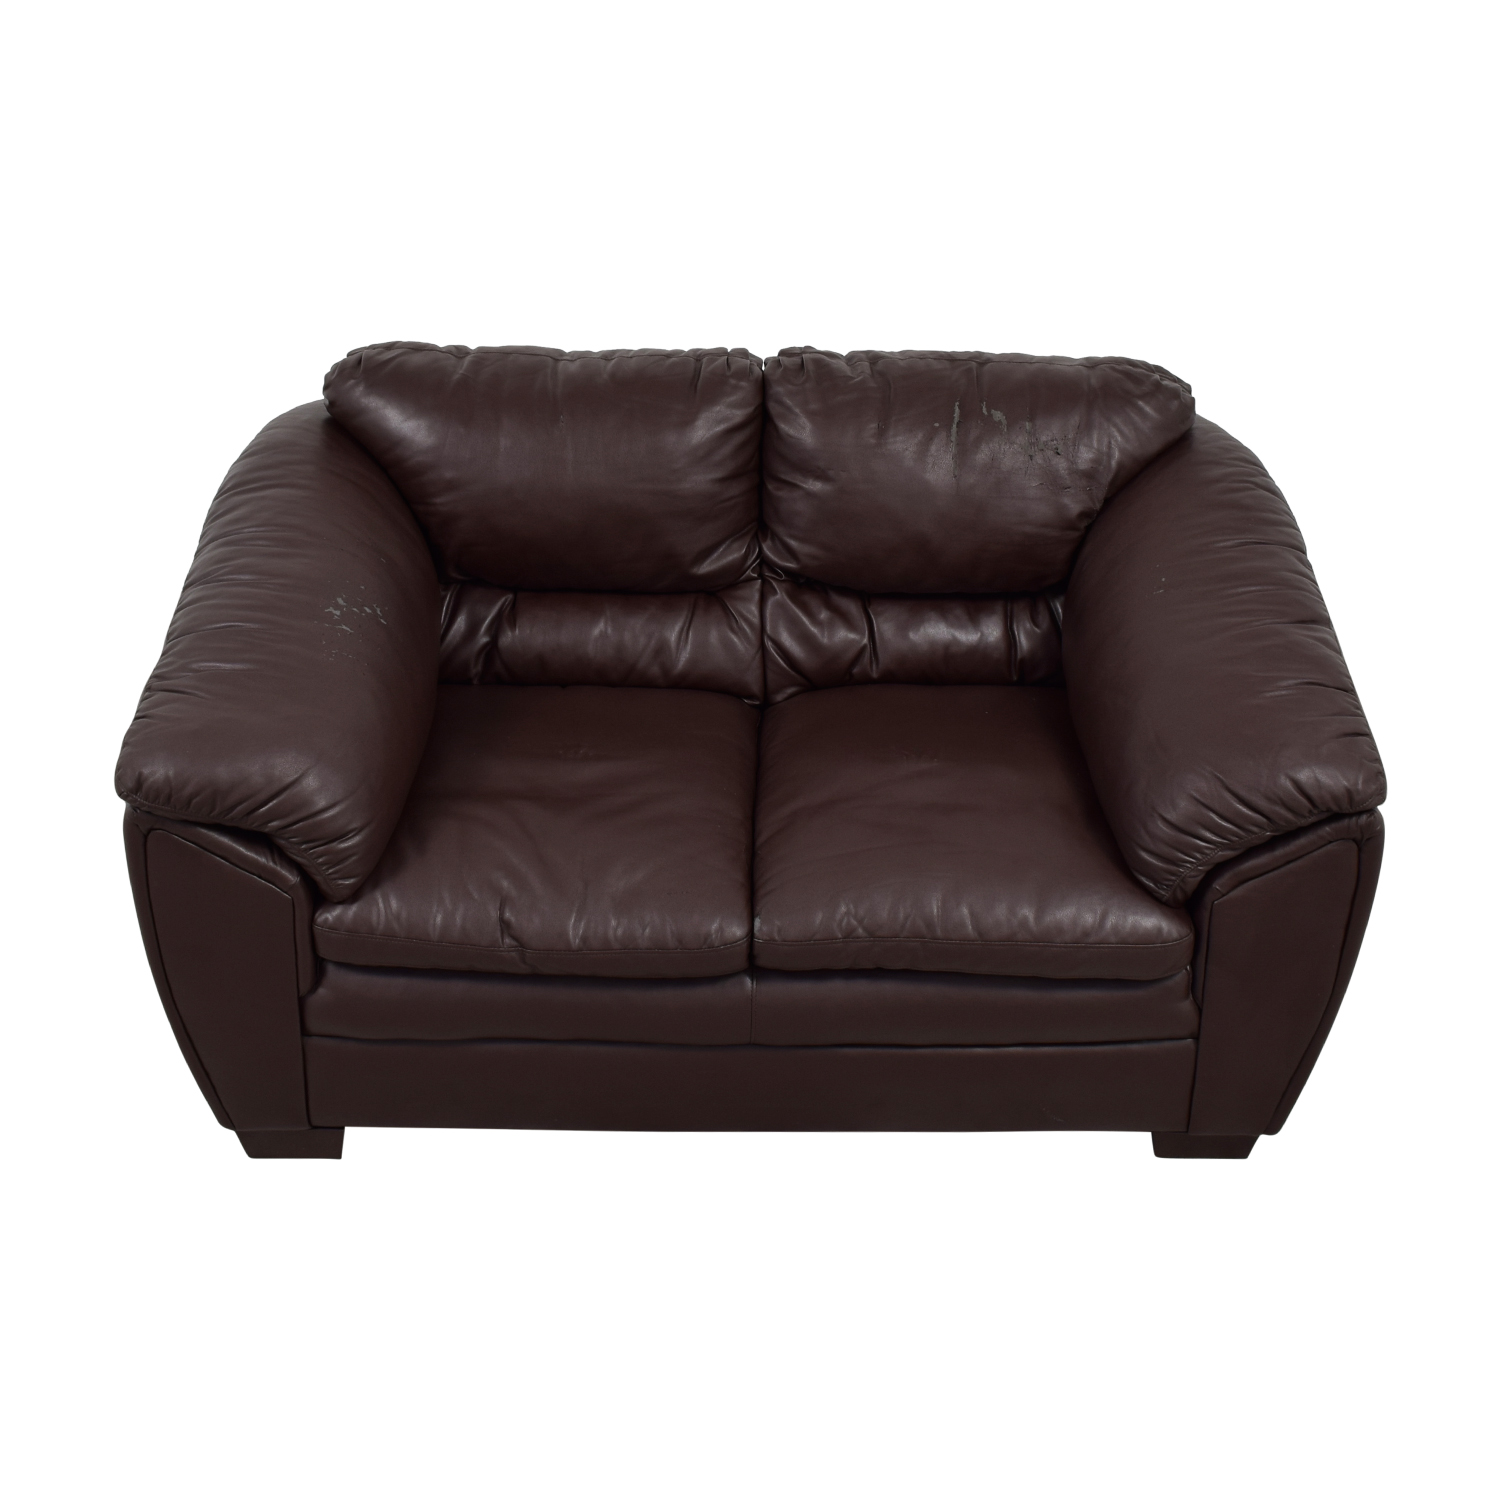 buy  Brown Faux Leather Love Seat online